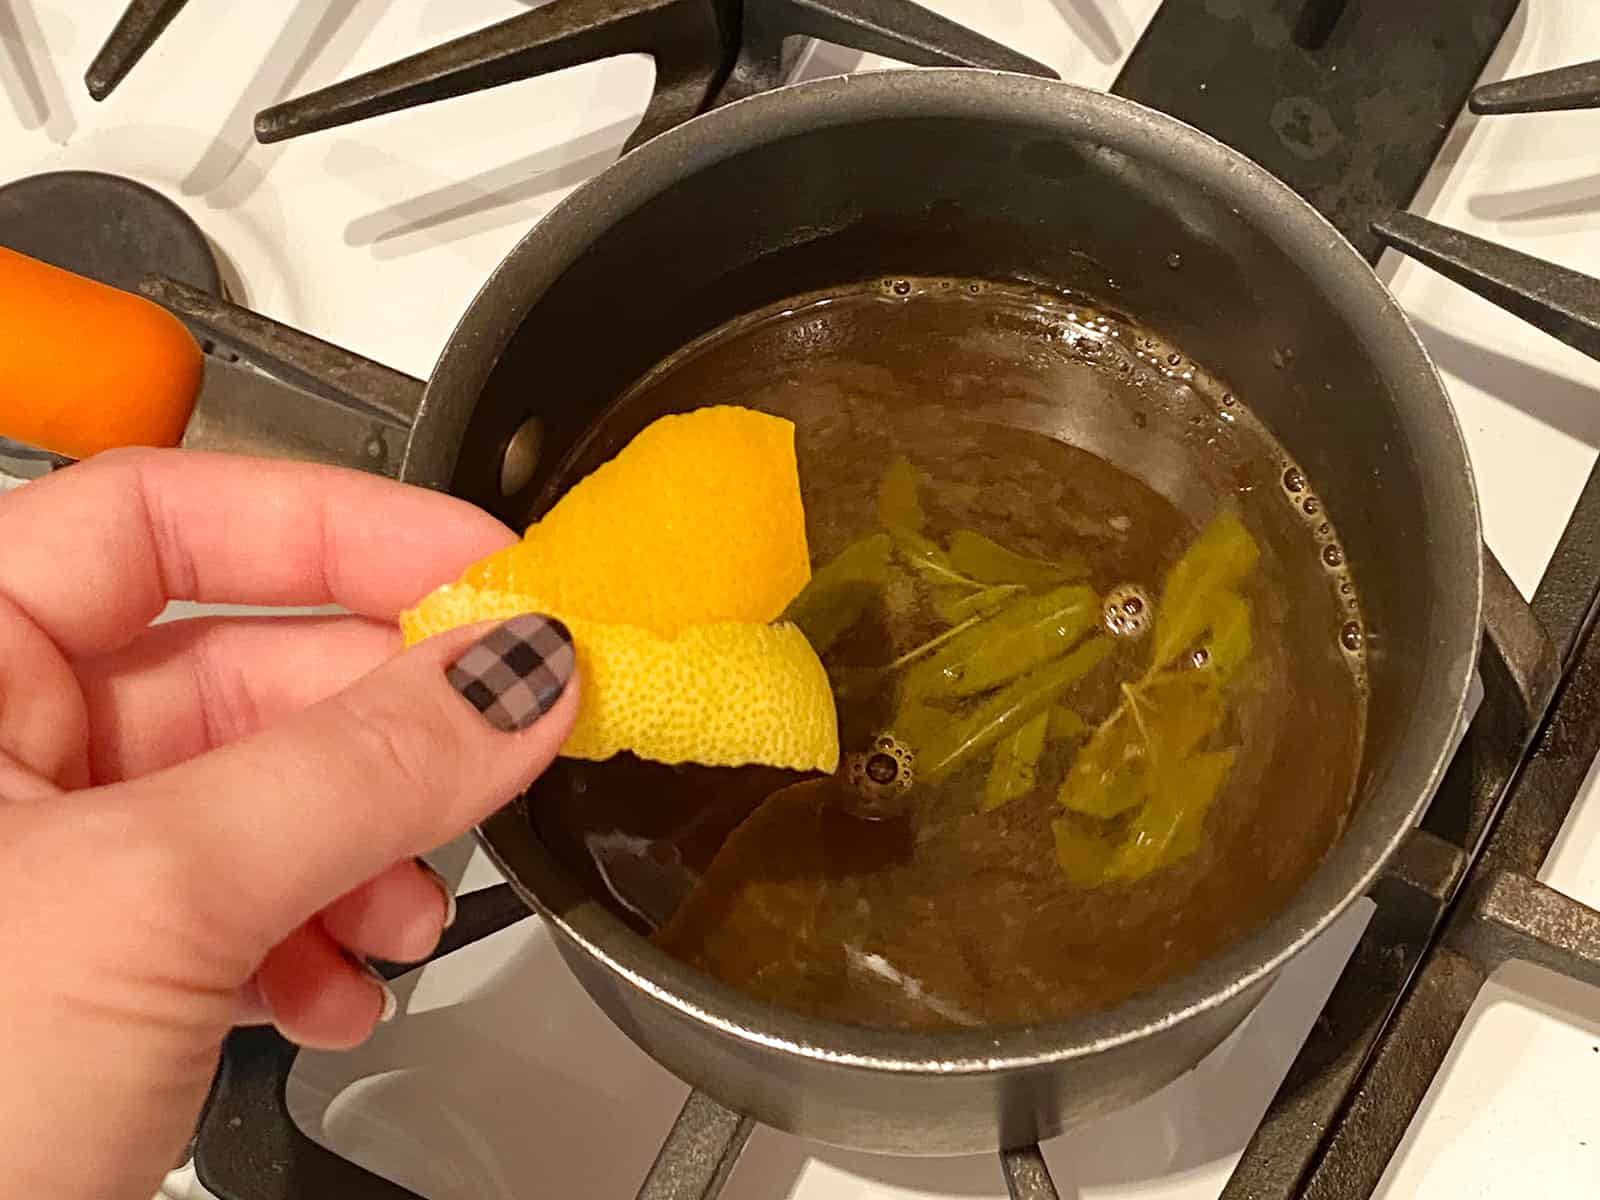 Orange peel and lemon peel being added to a pot on the stove.